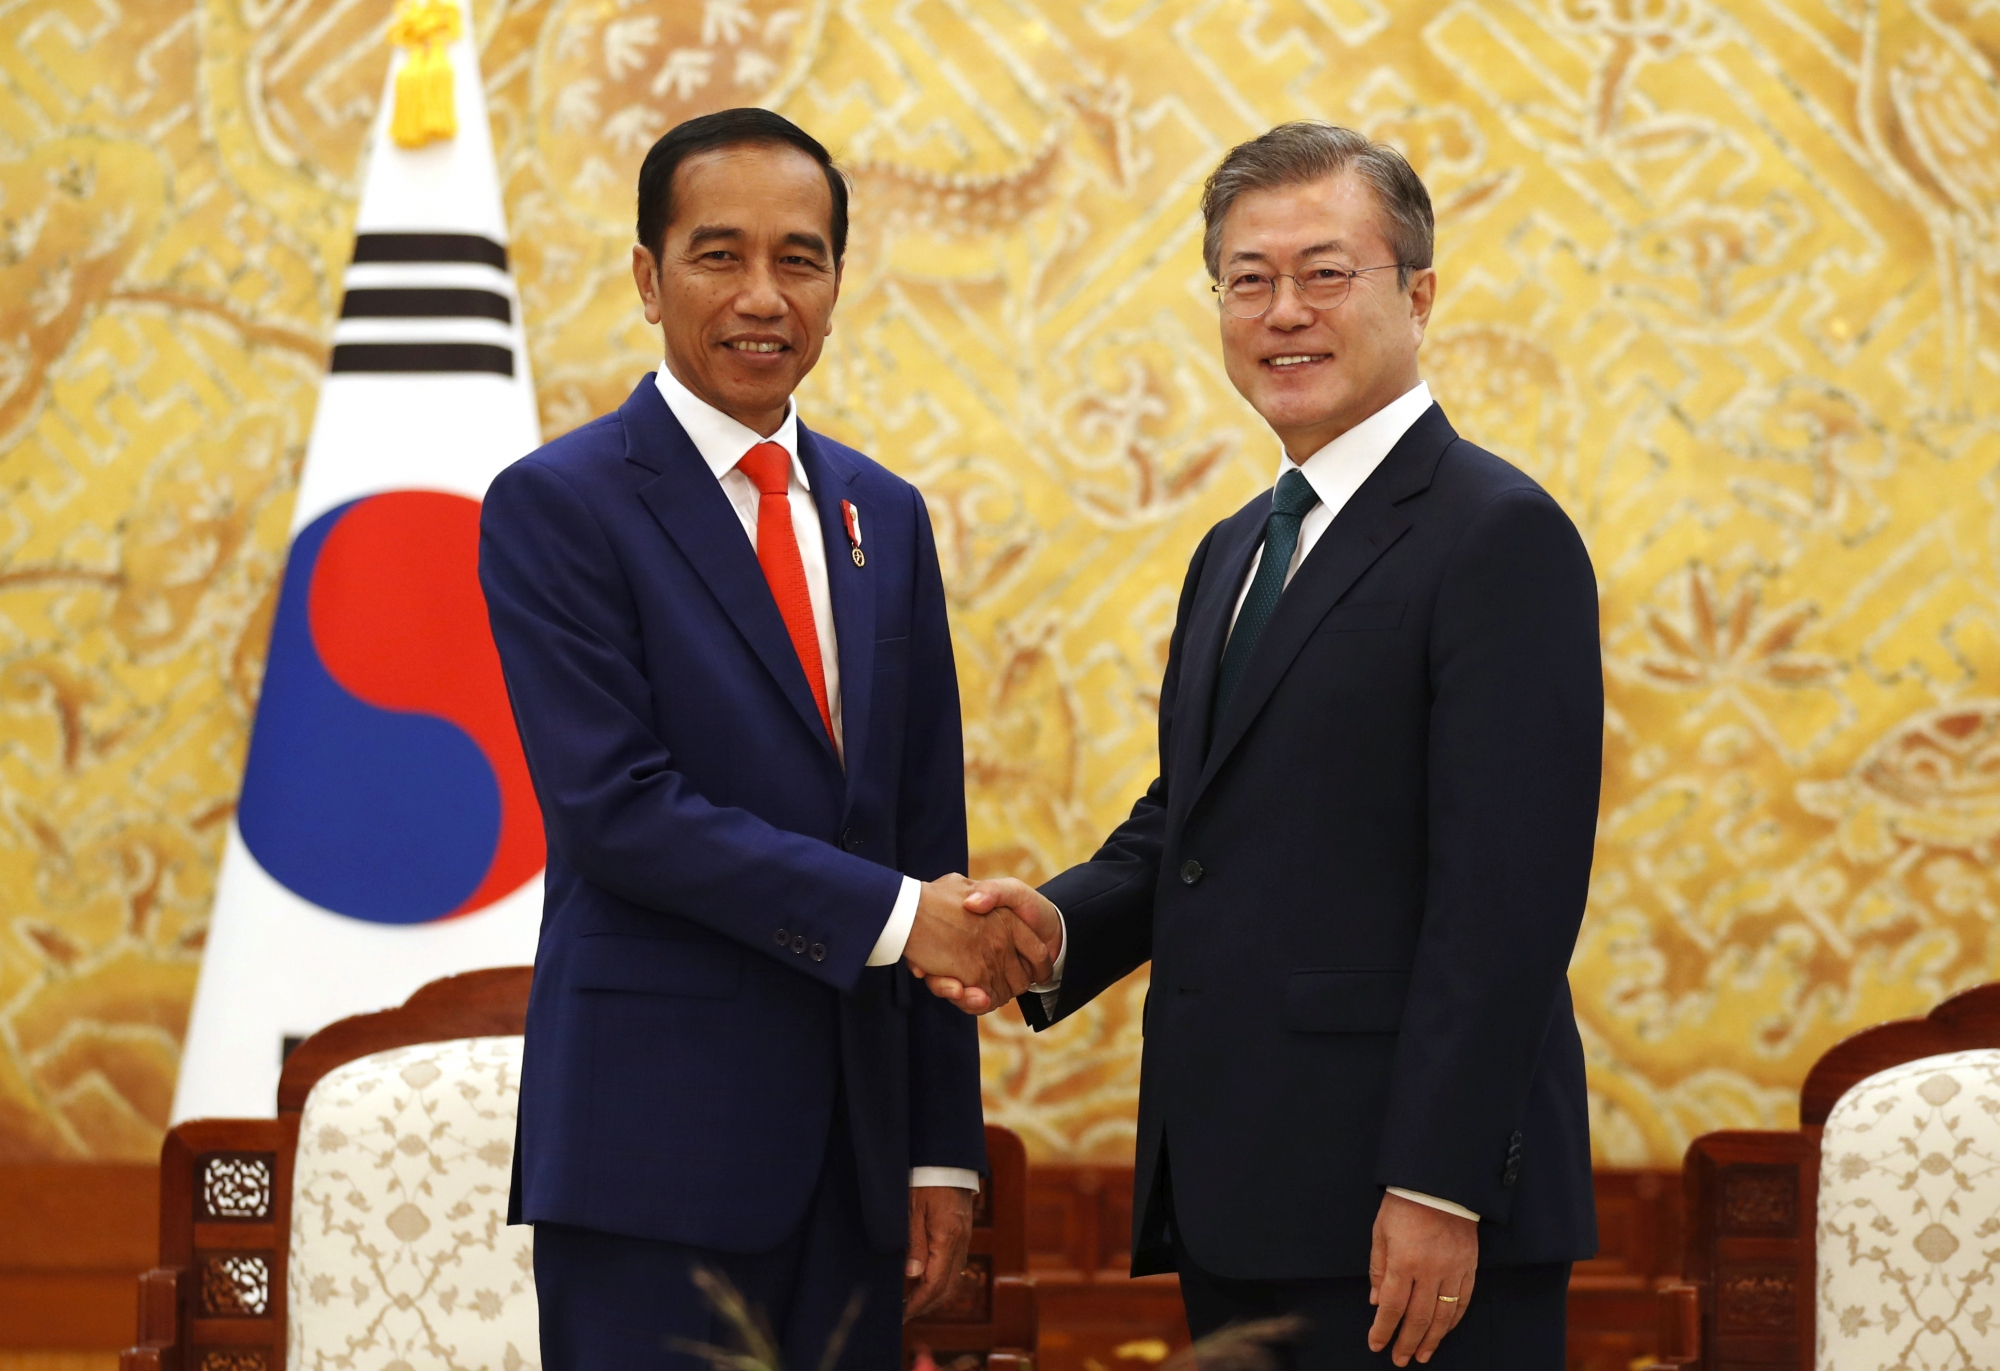 S. Korea's Moon asks Indonesia's help for inter-Korea peace